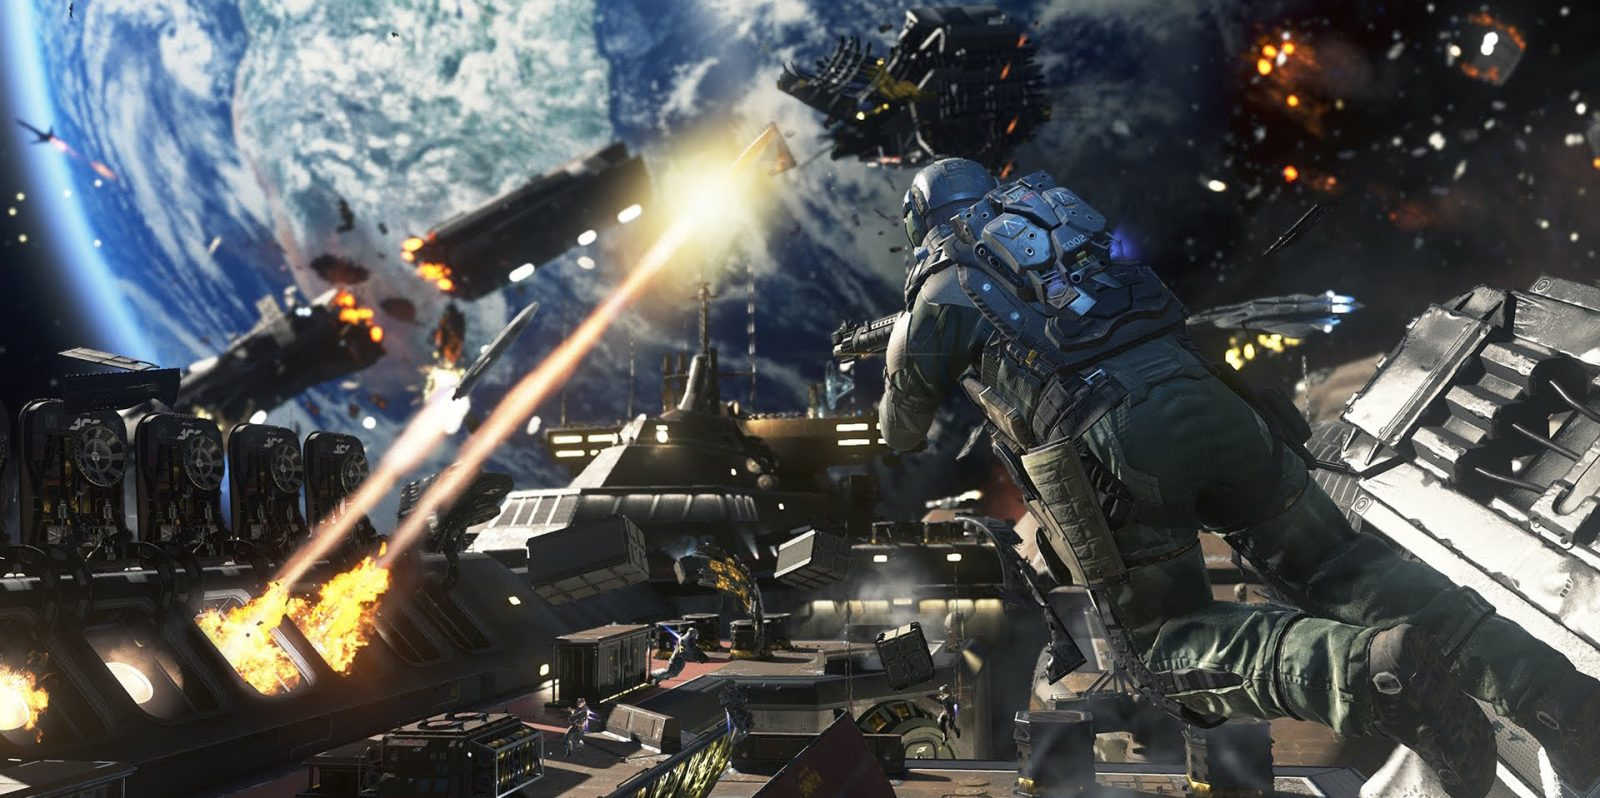 Games/Apps: Call of Duty Infinite Warfare $40, Just Dance